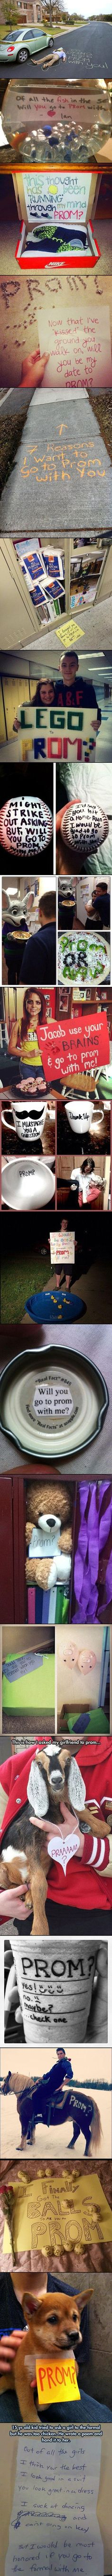 Proposal Ideas creative Best promposals ever! Im dying and laughing and crying and agh! Best promposals ever! Im dying and laughing and crying and agh!